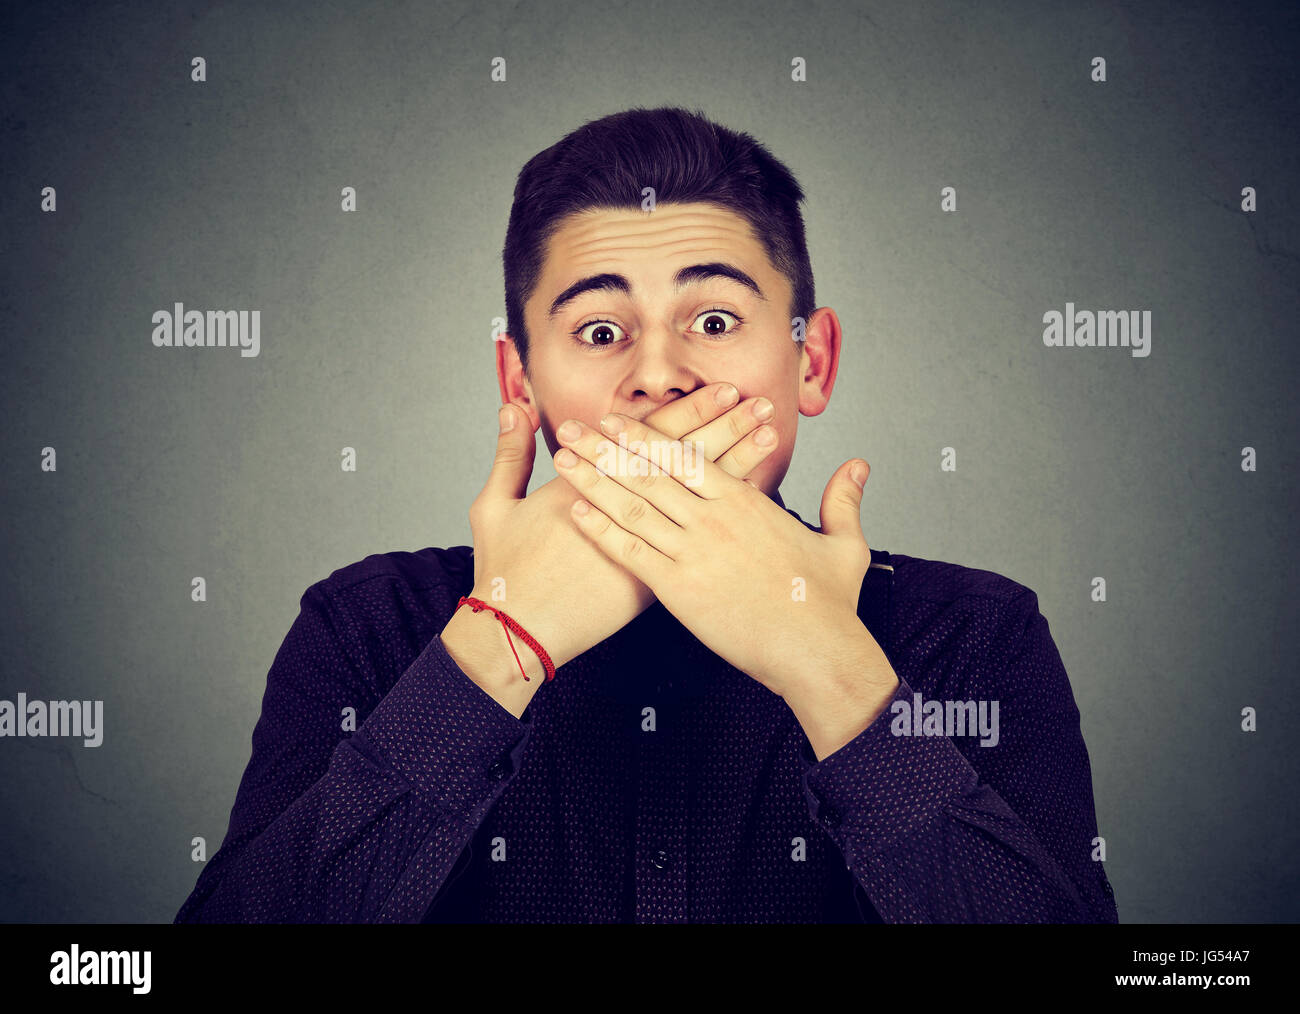 Scared man covering mouth with hands Stock Photo